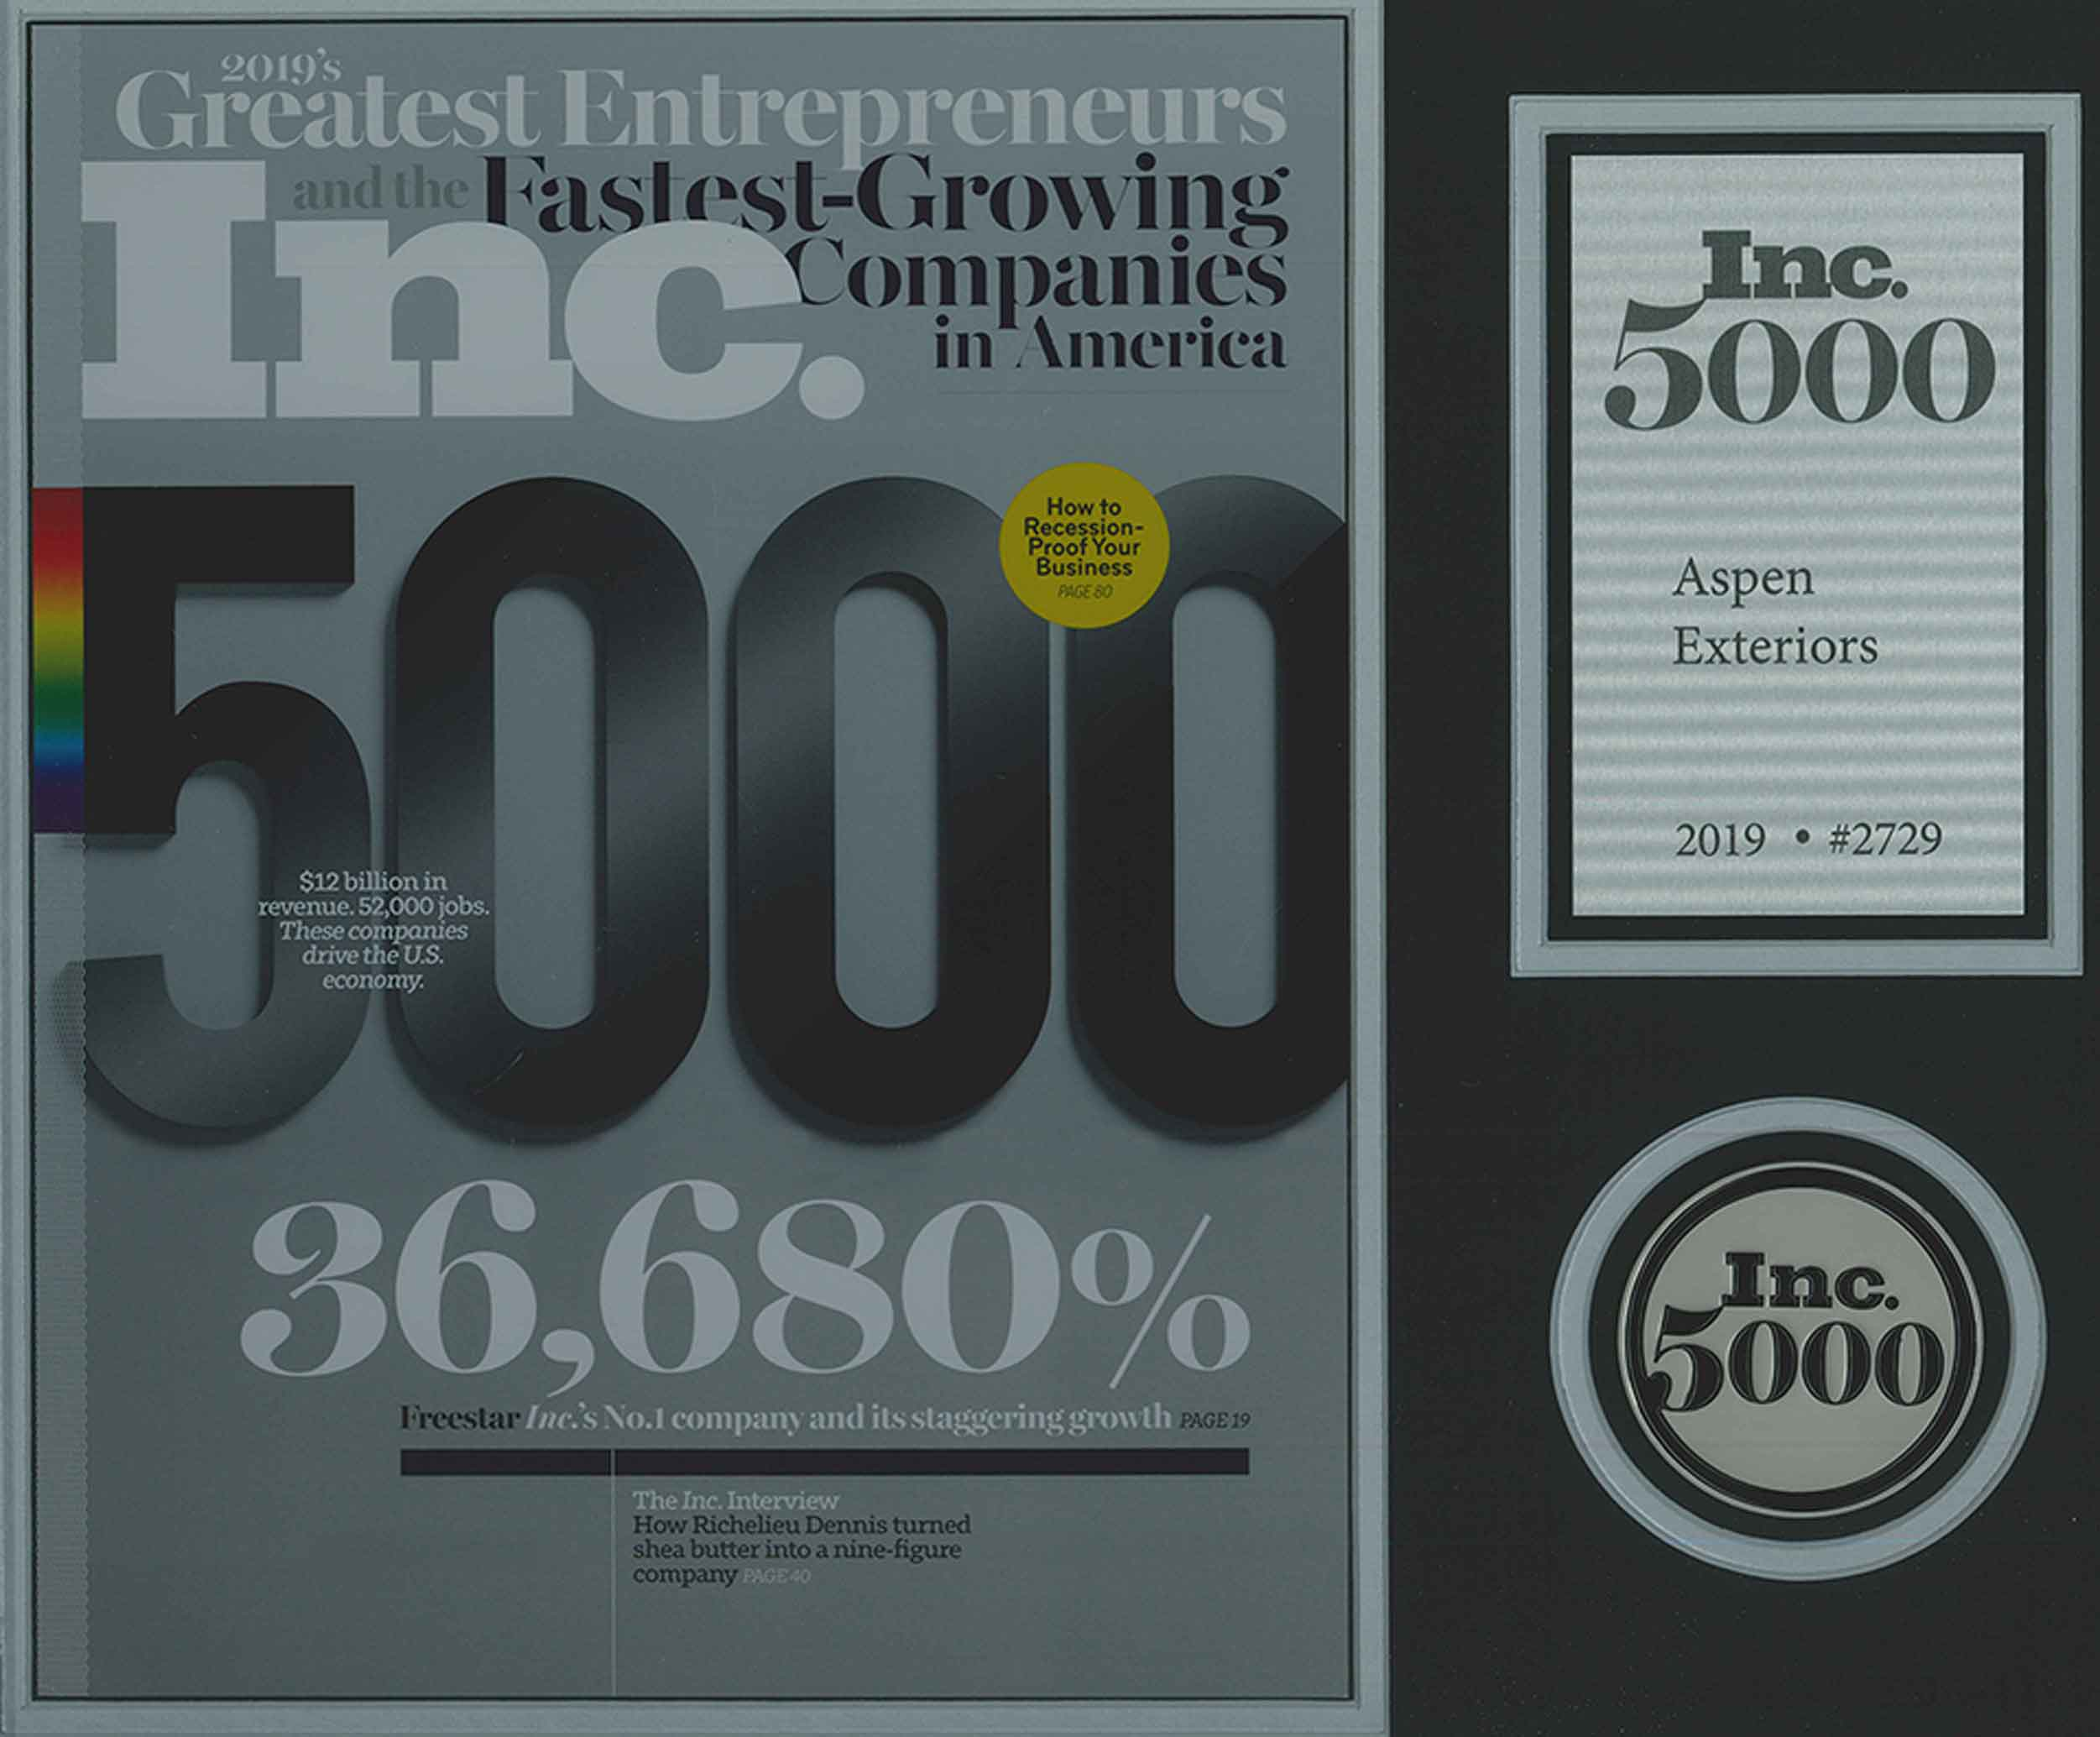 INC. 500: 2019 Greatest entrepreneurs